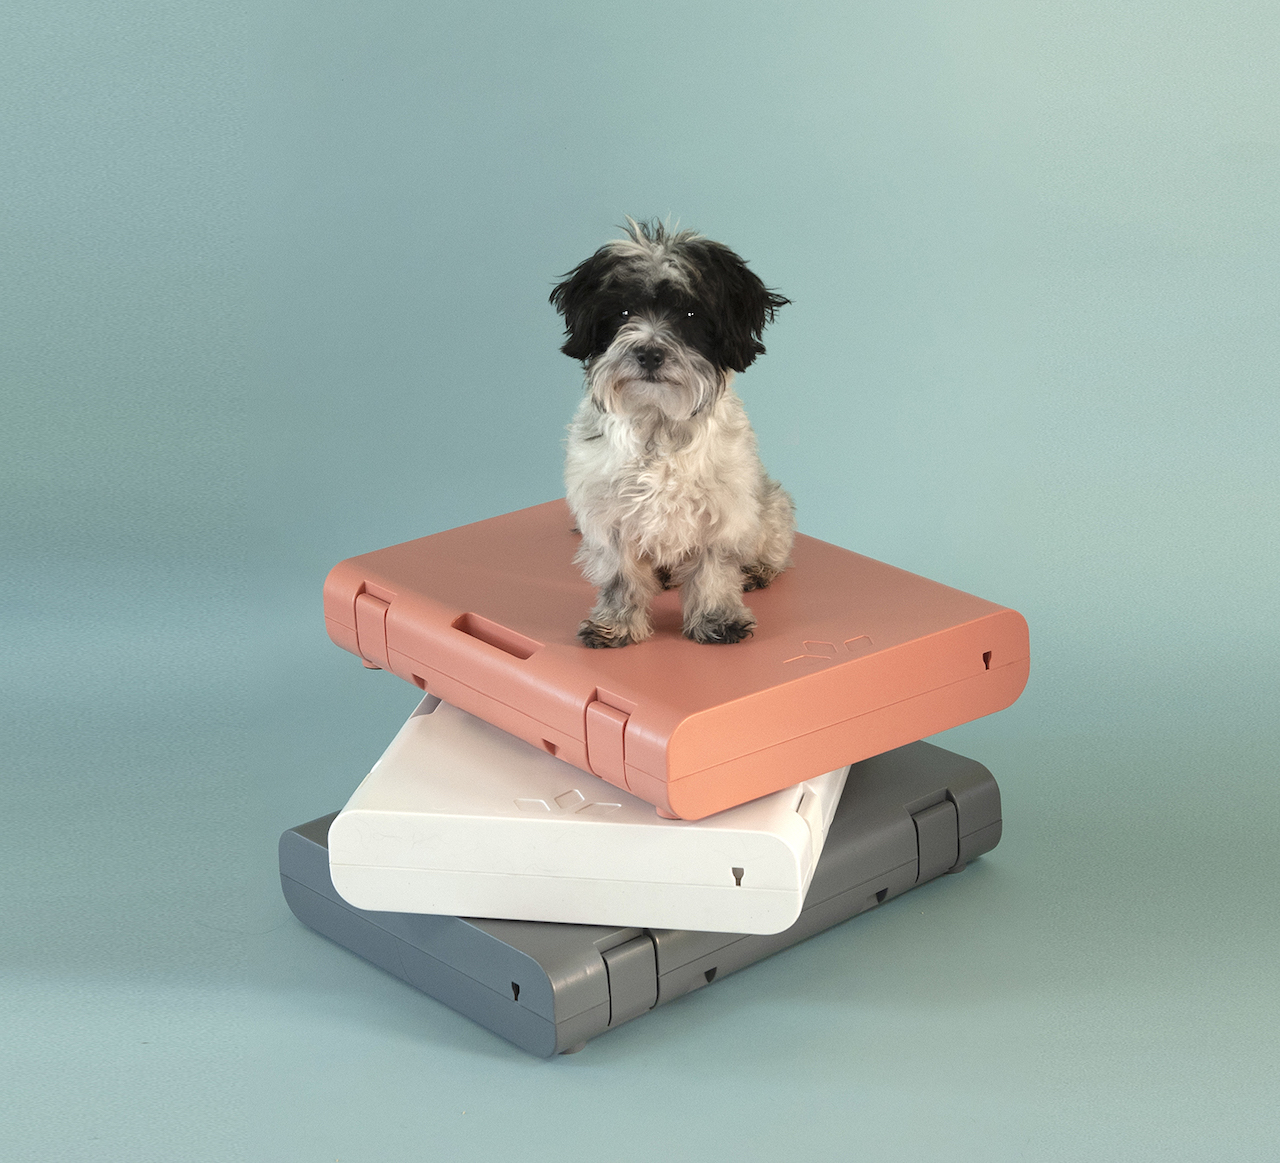 PAWD Pet Crate from KindTail